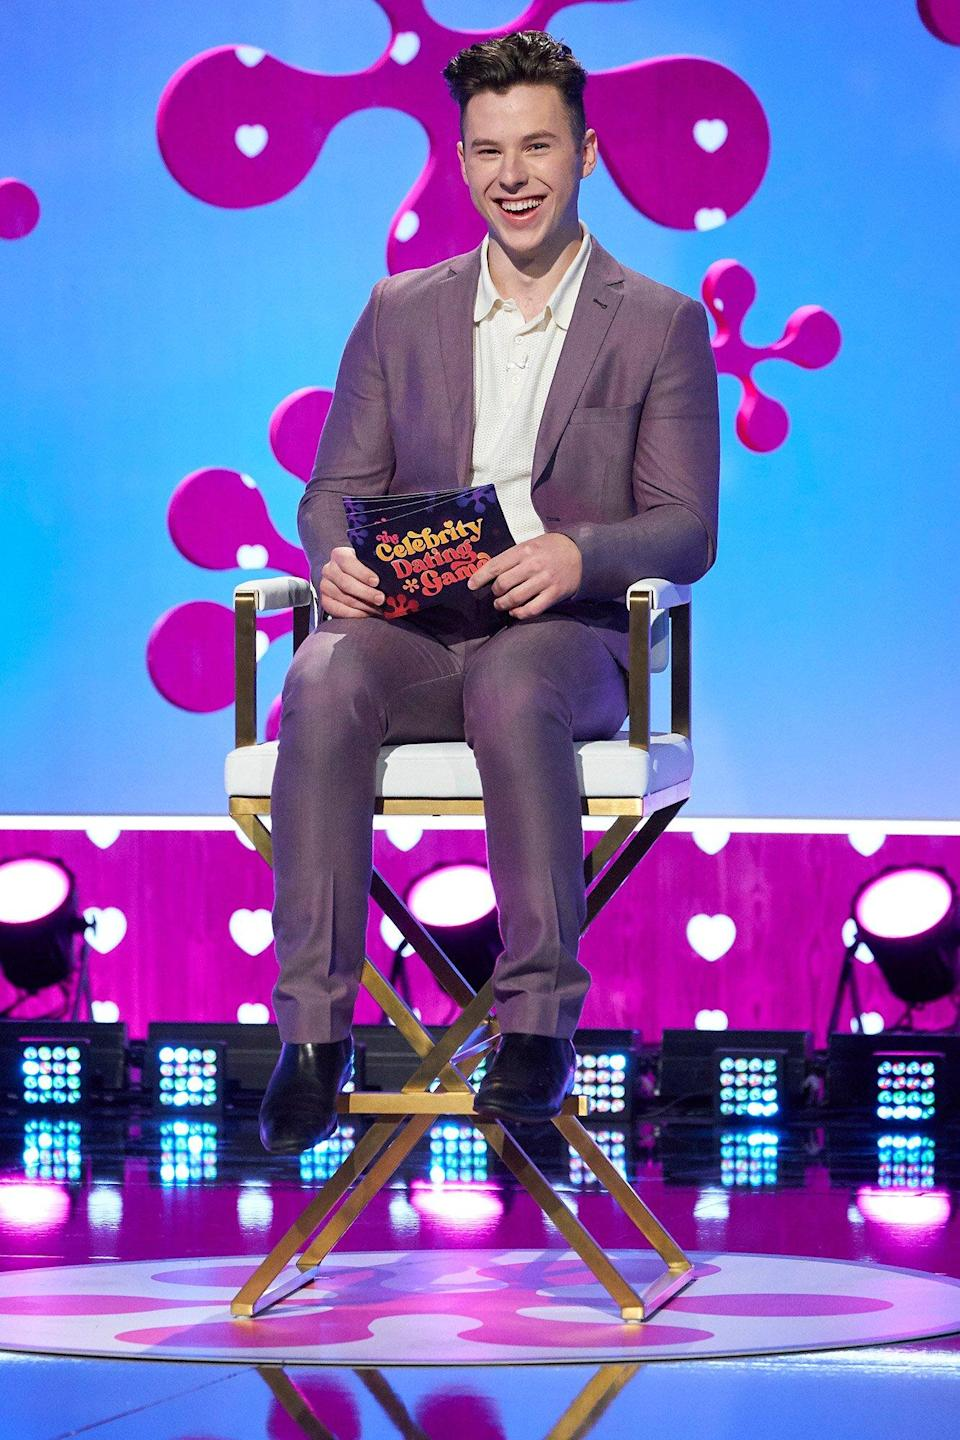 THE CELEBRITY DATING GAME Nolan Gould